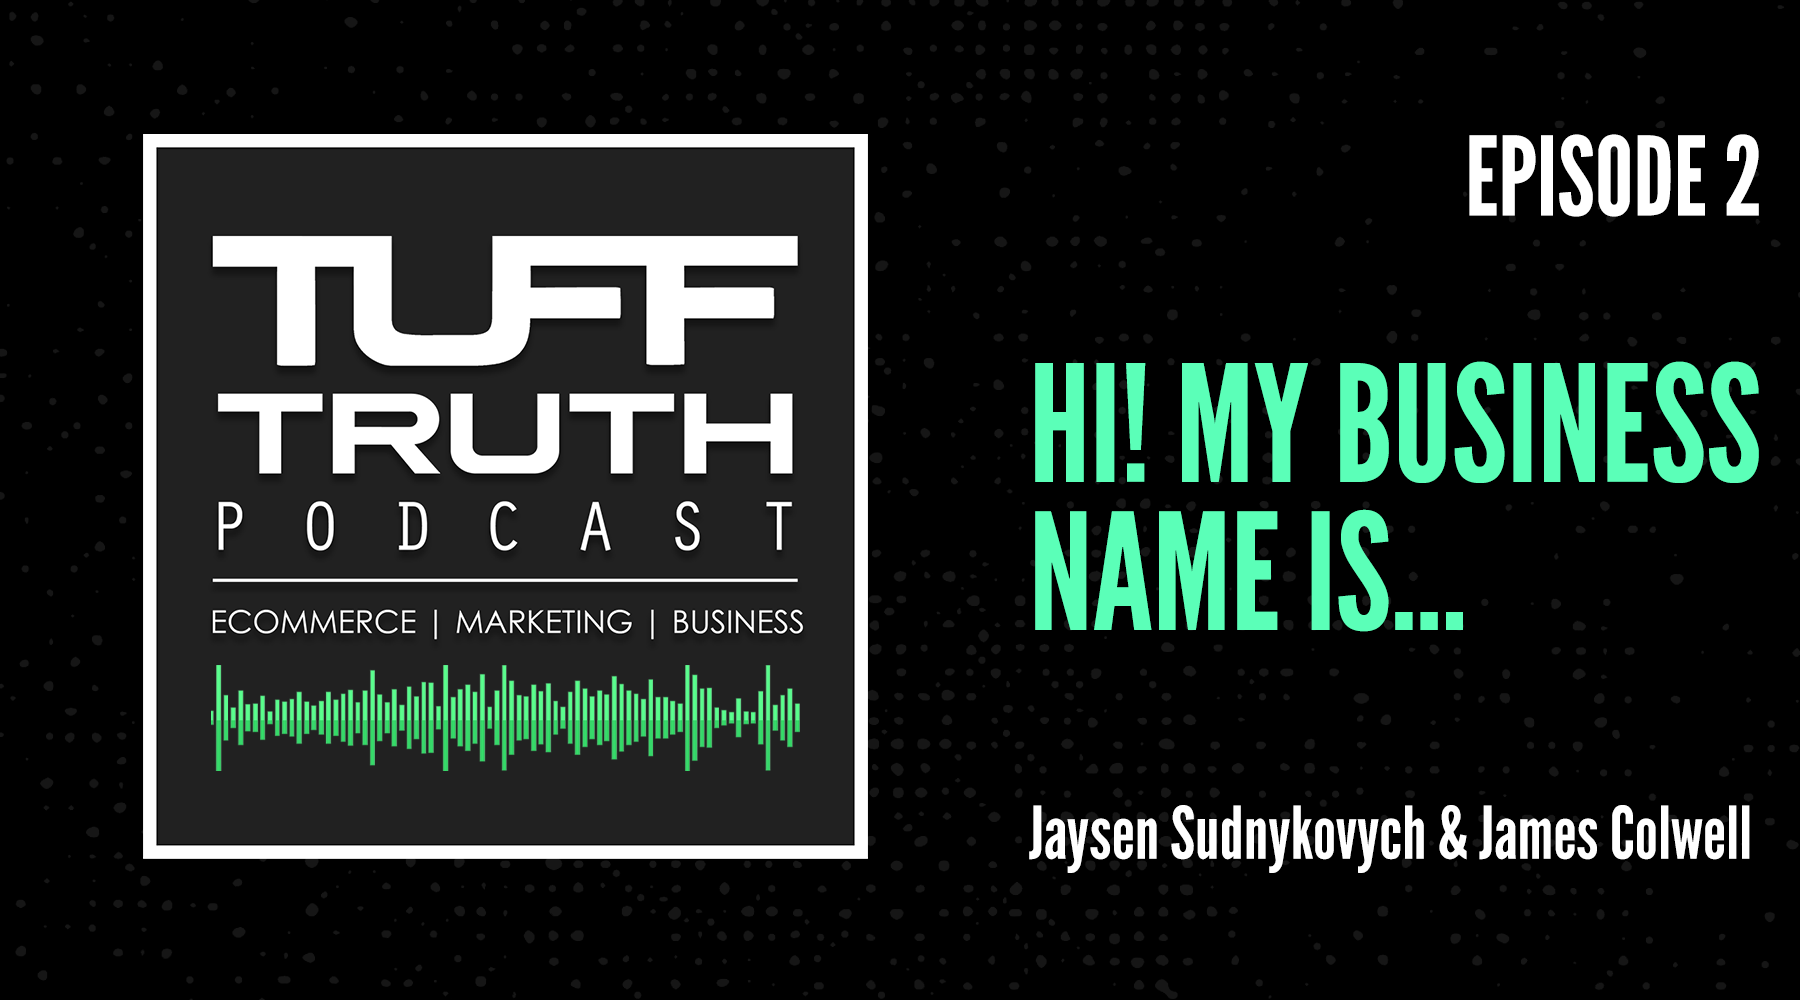 Episode 2: Hi! My business name is  - The TUFF Truth Podcast